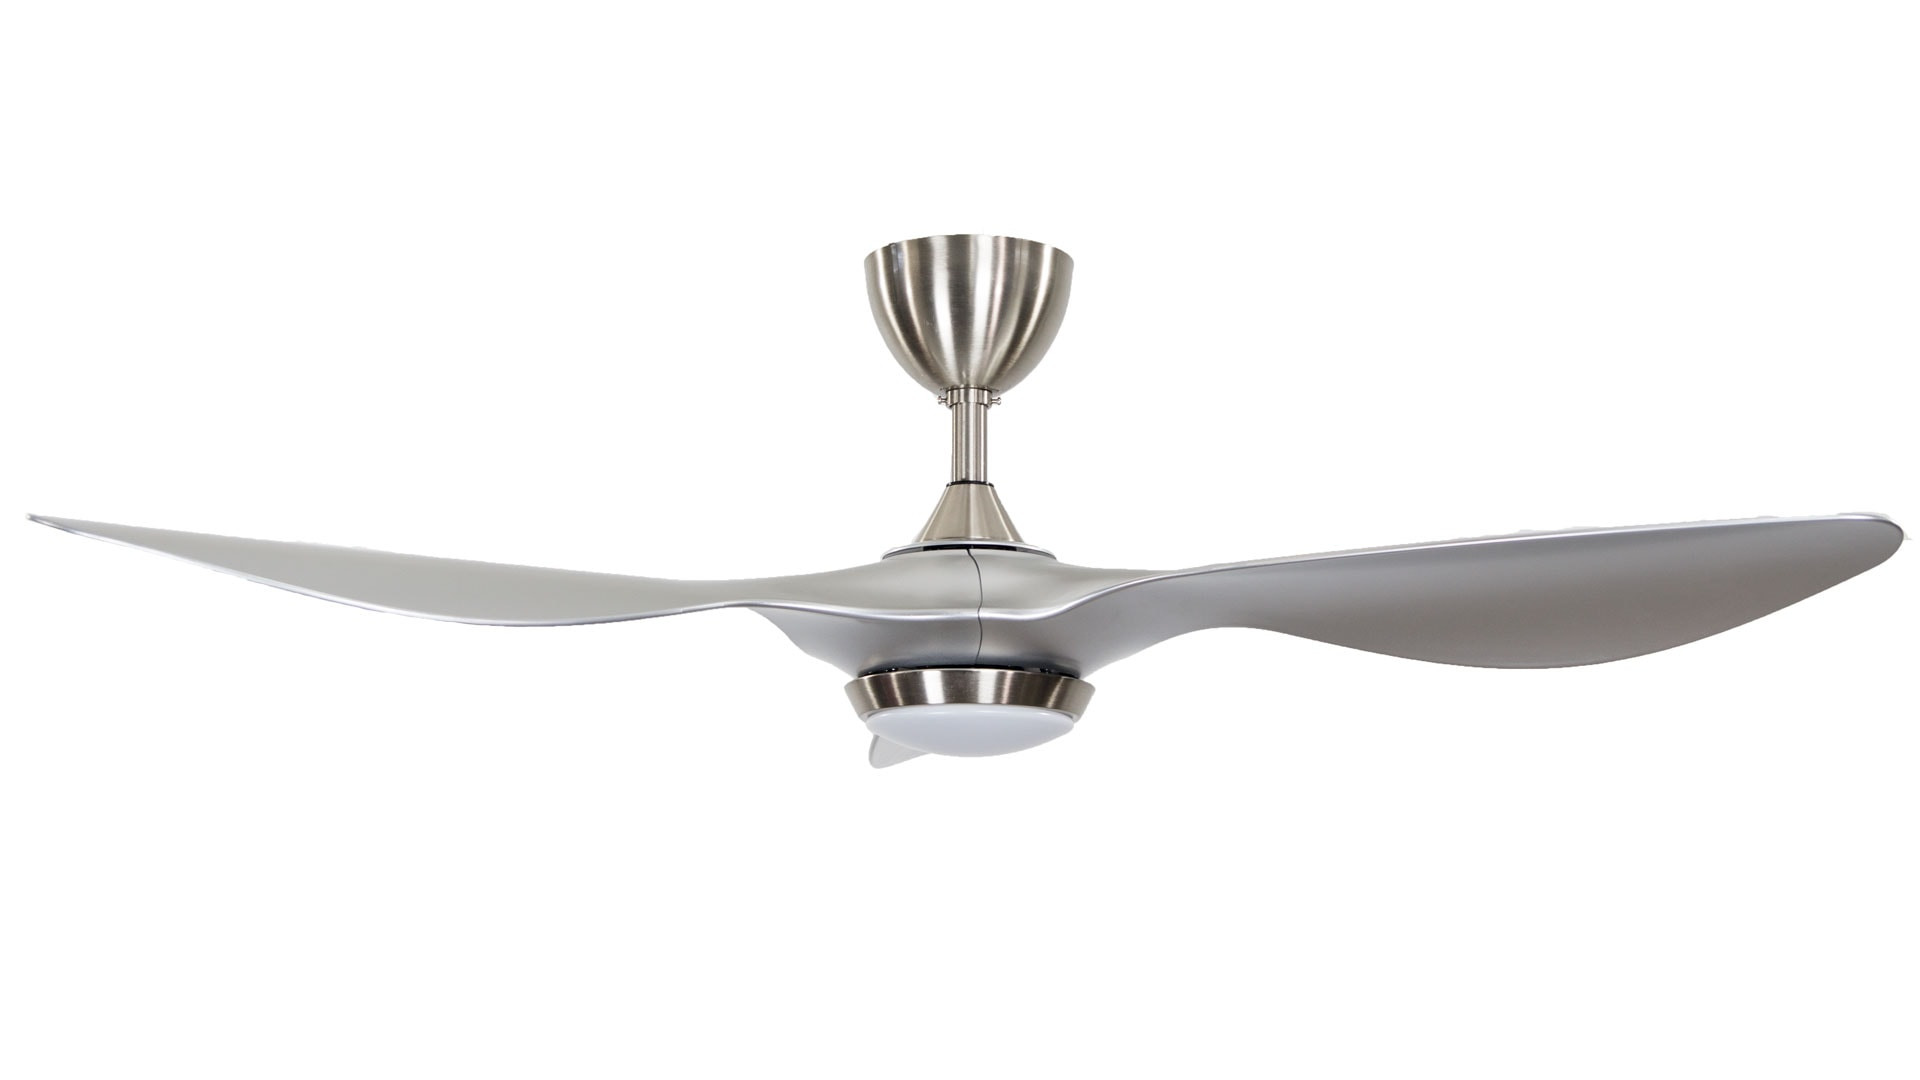 Alsanfan – Profan Bosphorus - Gray With Lights Ceiling Fan